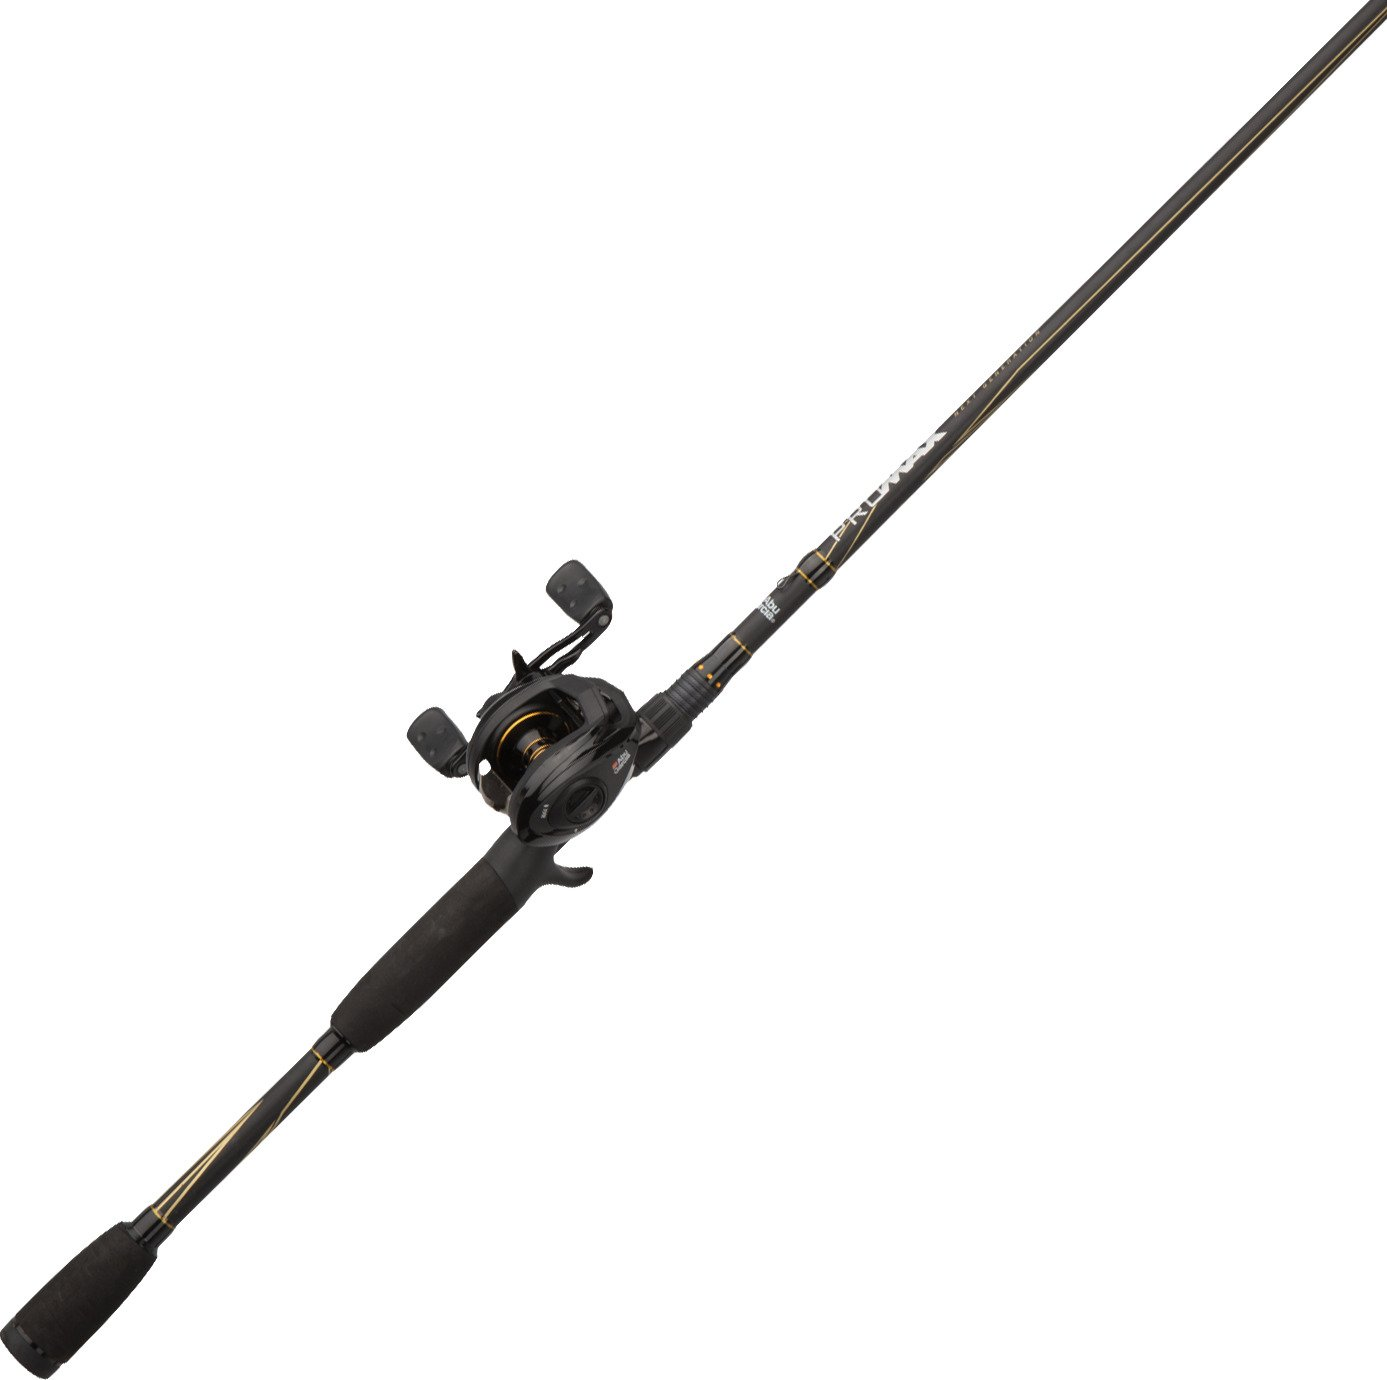 Abu Garcia® Pro Max Combo 7' MH Baitcast Rod and Reel Combo LH - view number 3